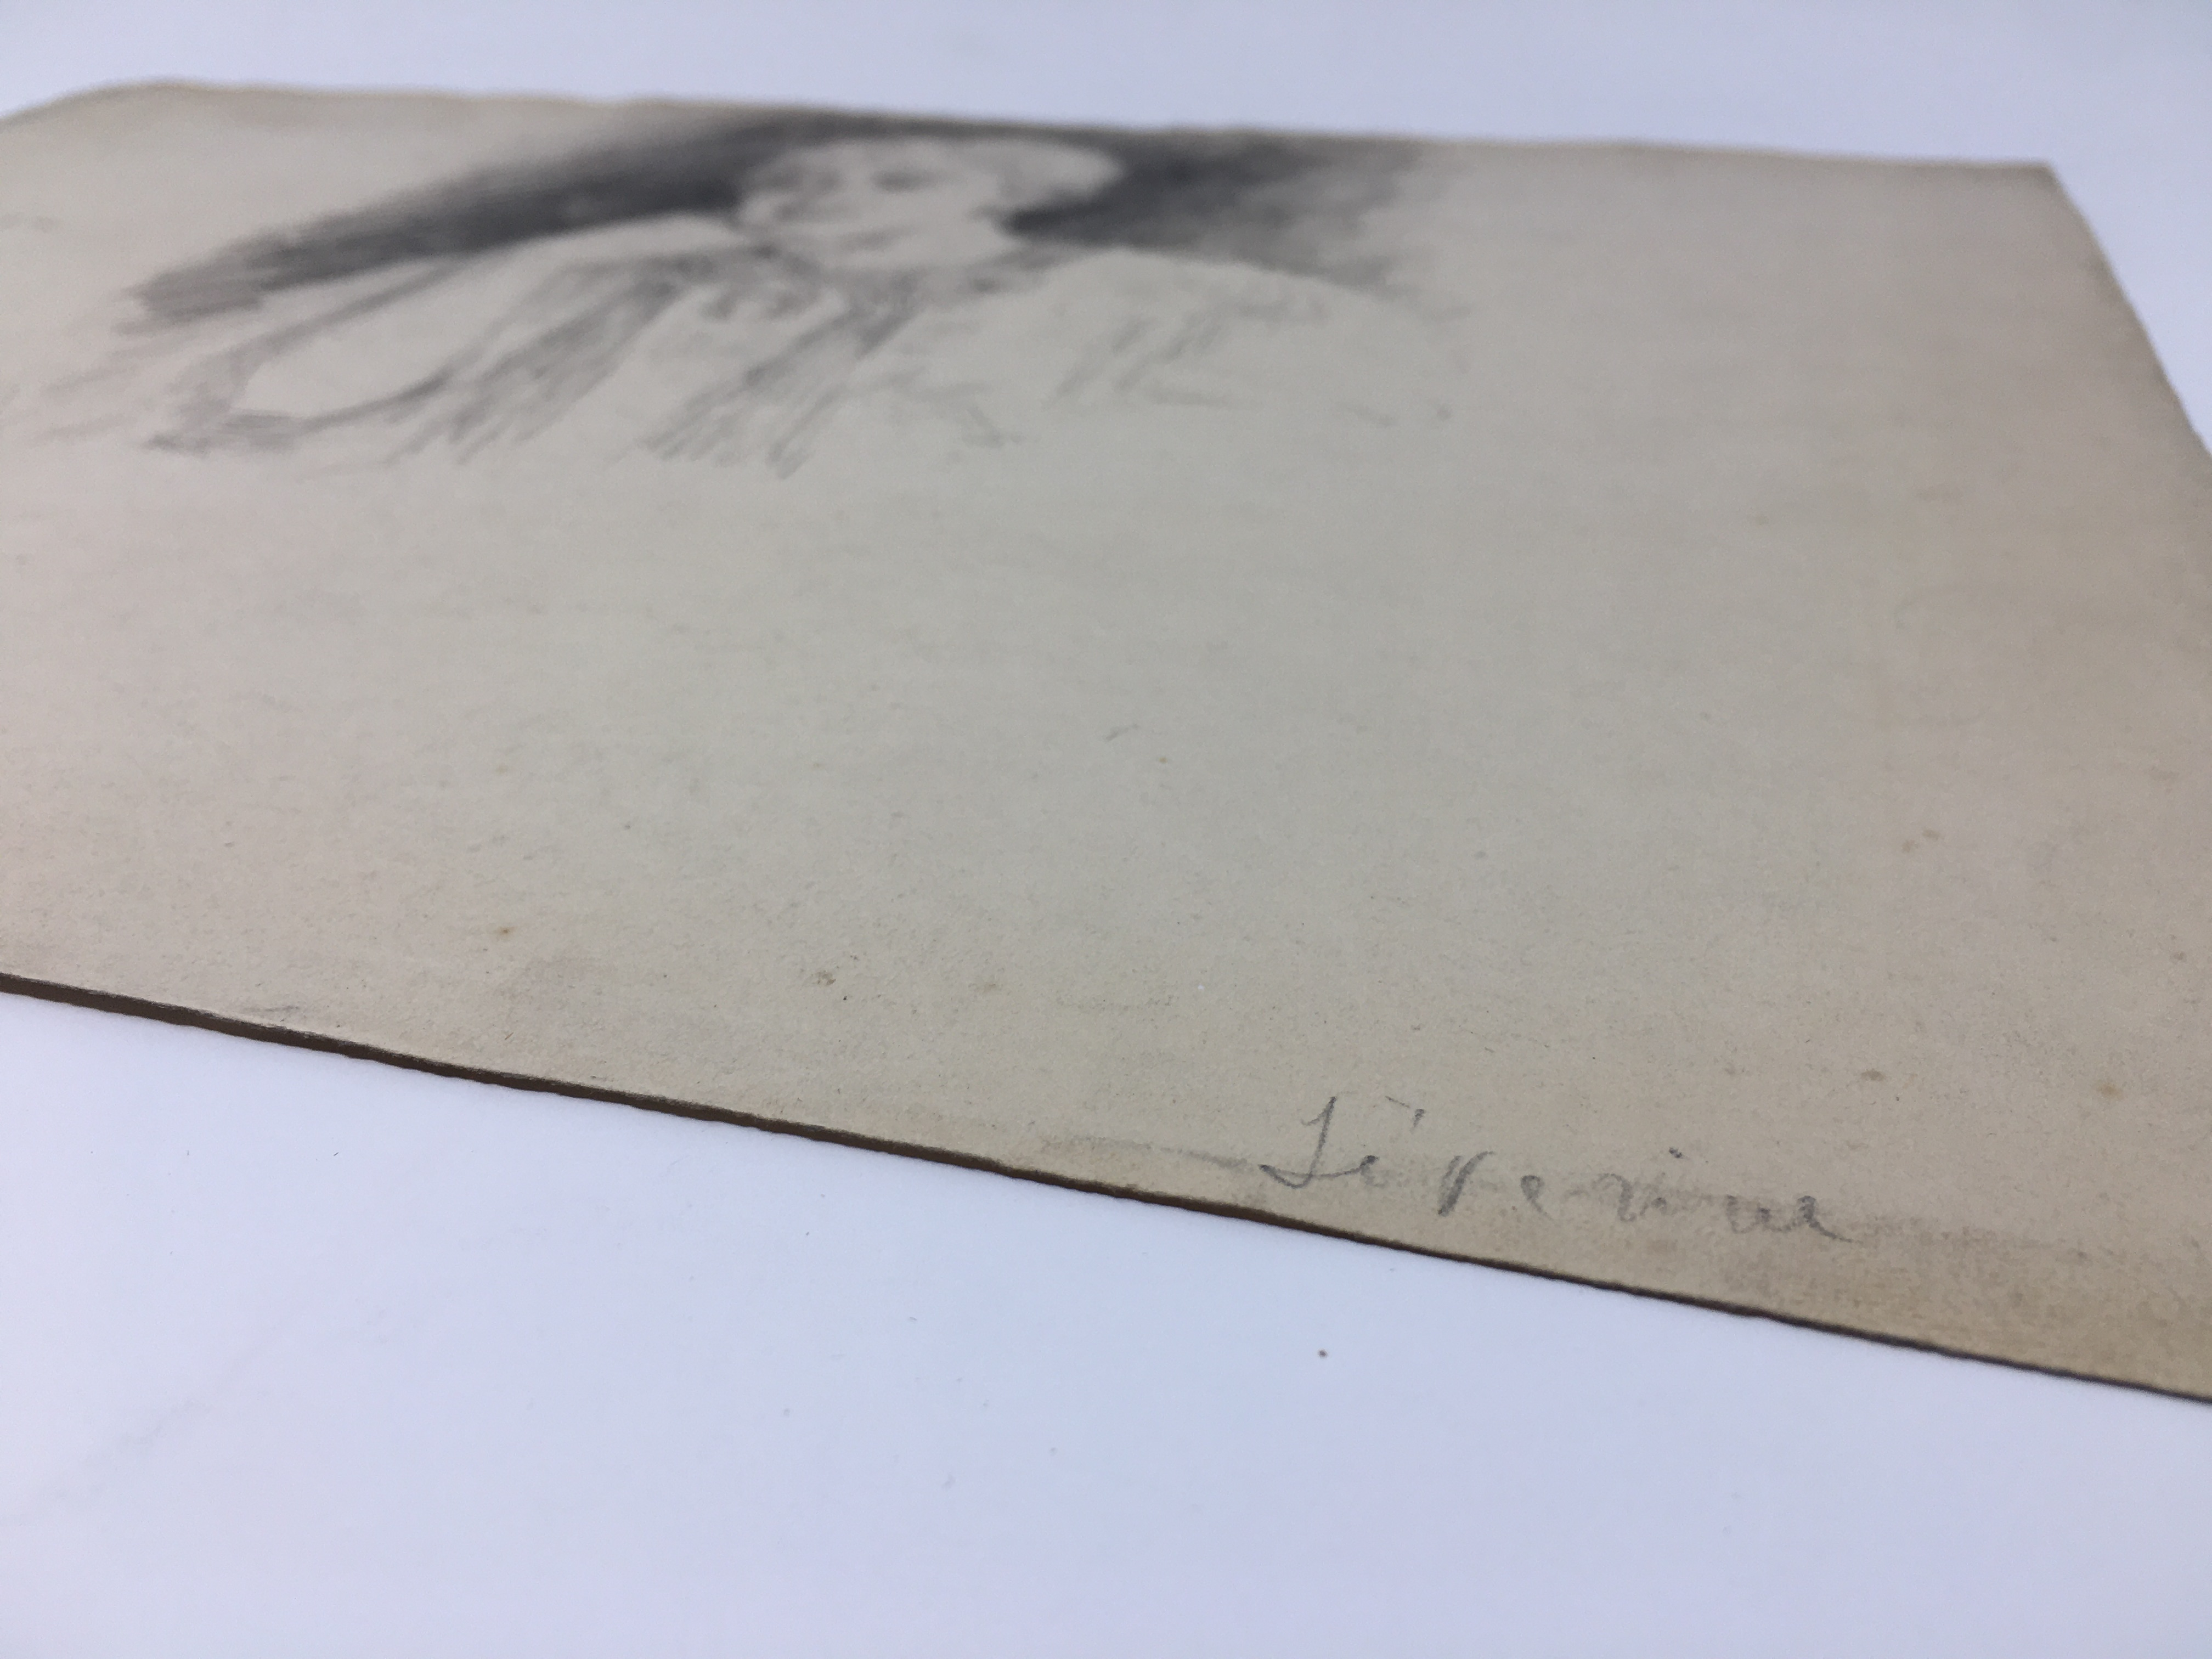 J'Accuse Newspaper, Emile Zola Quote, Signed Dreyfus Portrait, Rare Trial Drawings & Schwartzkoppen - Image 65 of 74